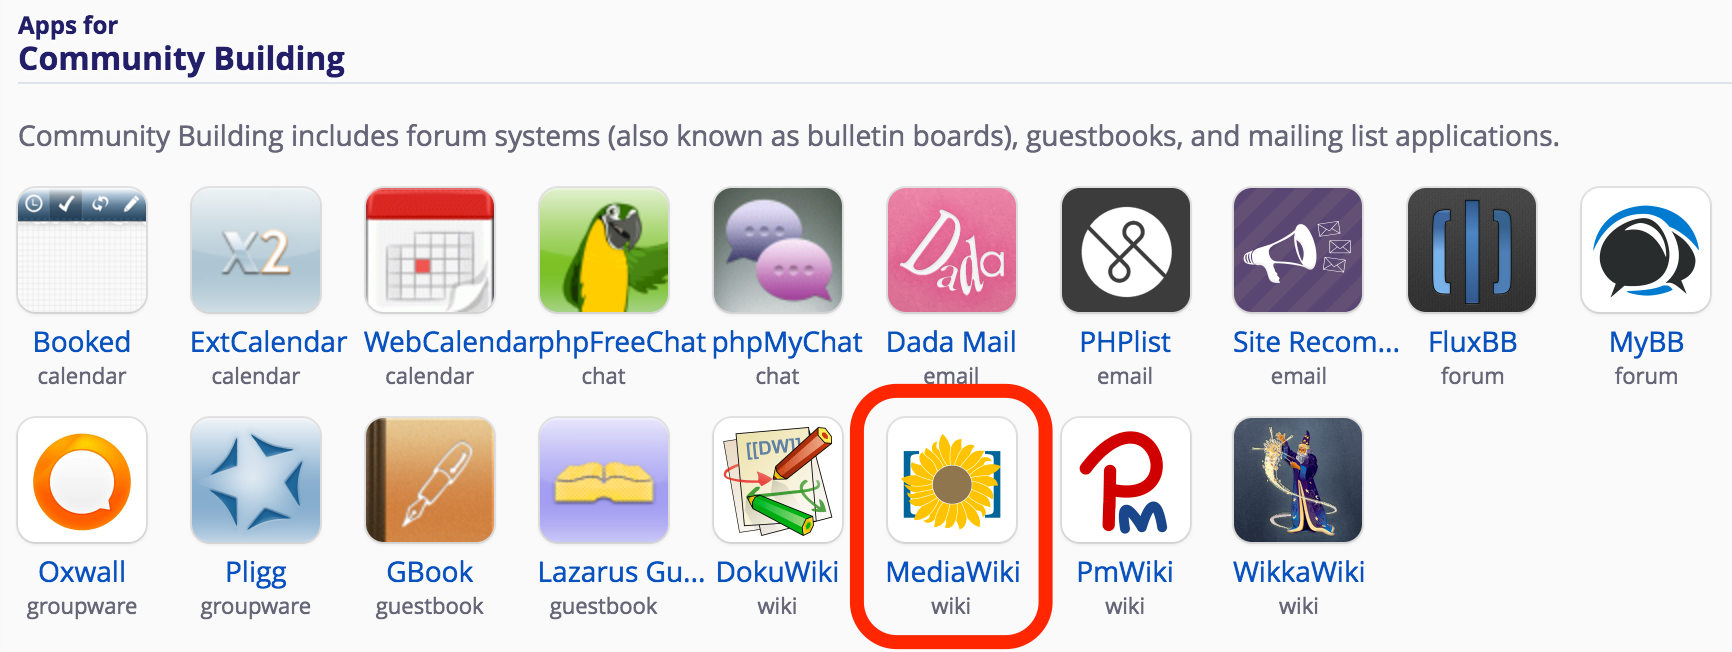 MediaWiki icon within the apps for community building section